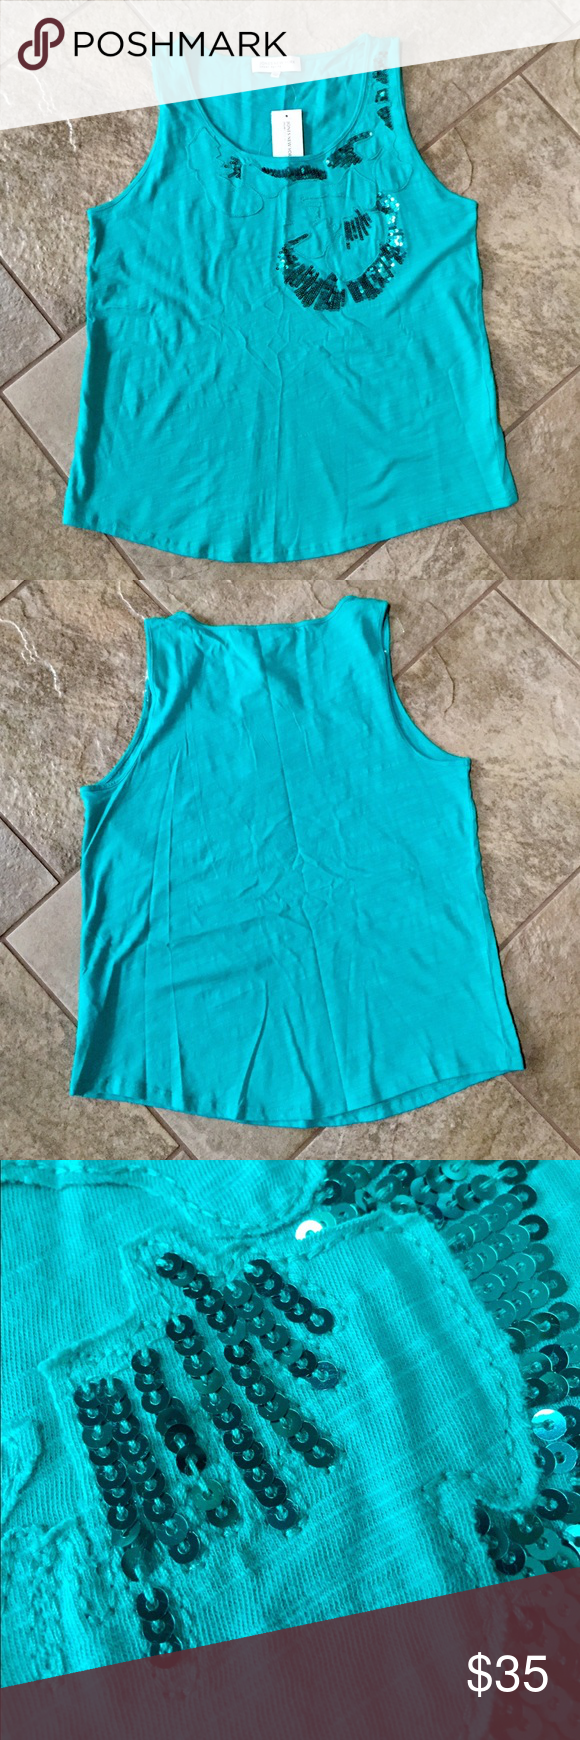 JONES NEW YORK Sequin Tank Top Royal Jade is color name, has sequin detail on the front, super soft & lightweight.  •THIS IS A PETITE LARGE• Jones New York Tops Tank Tops